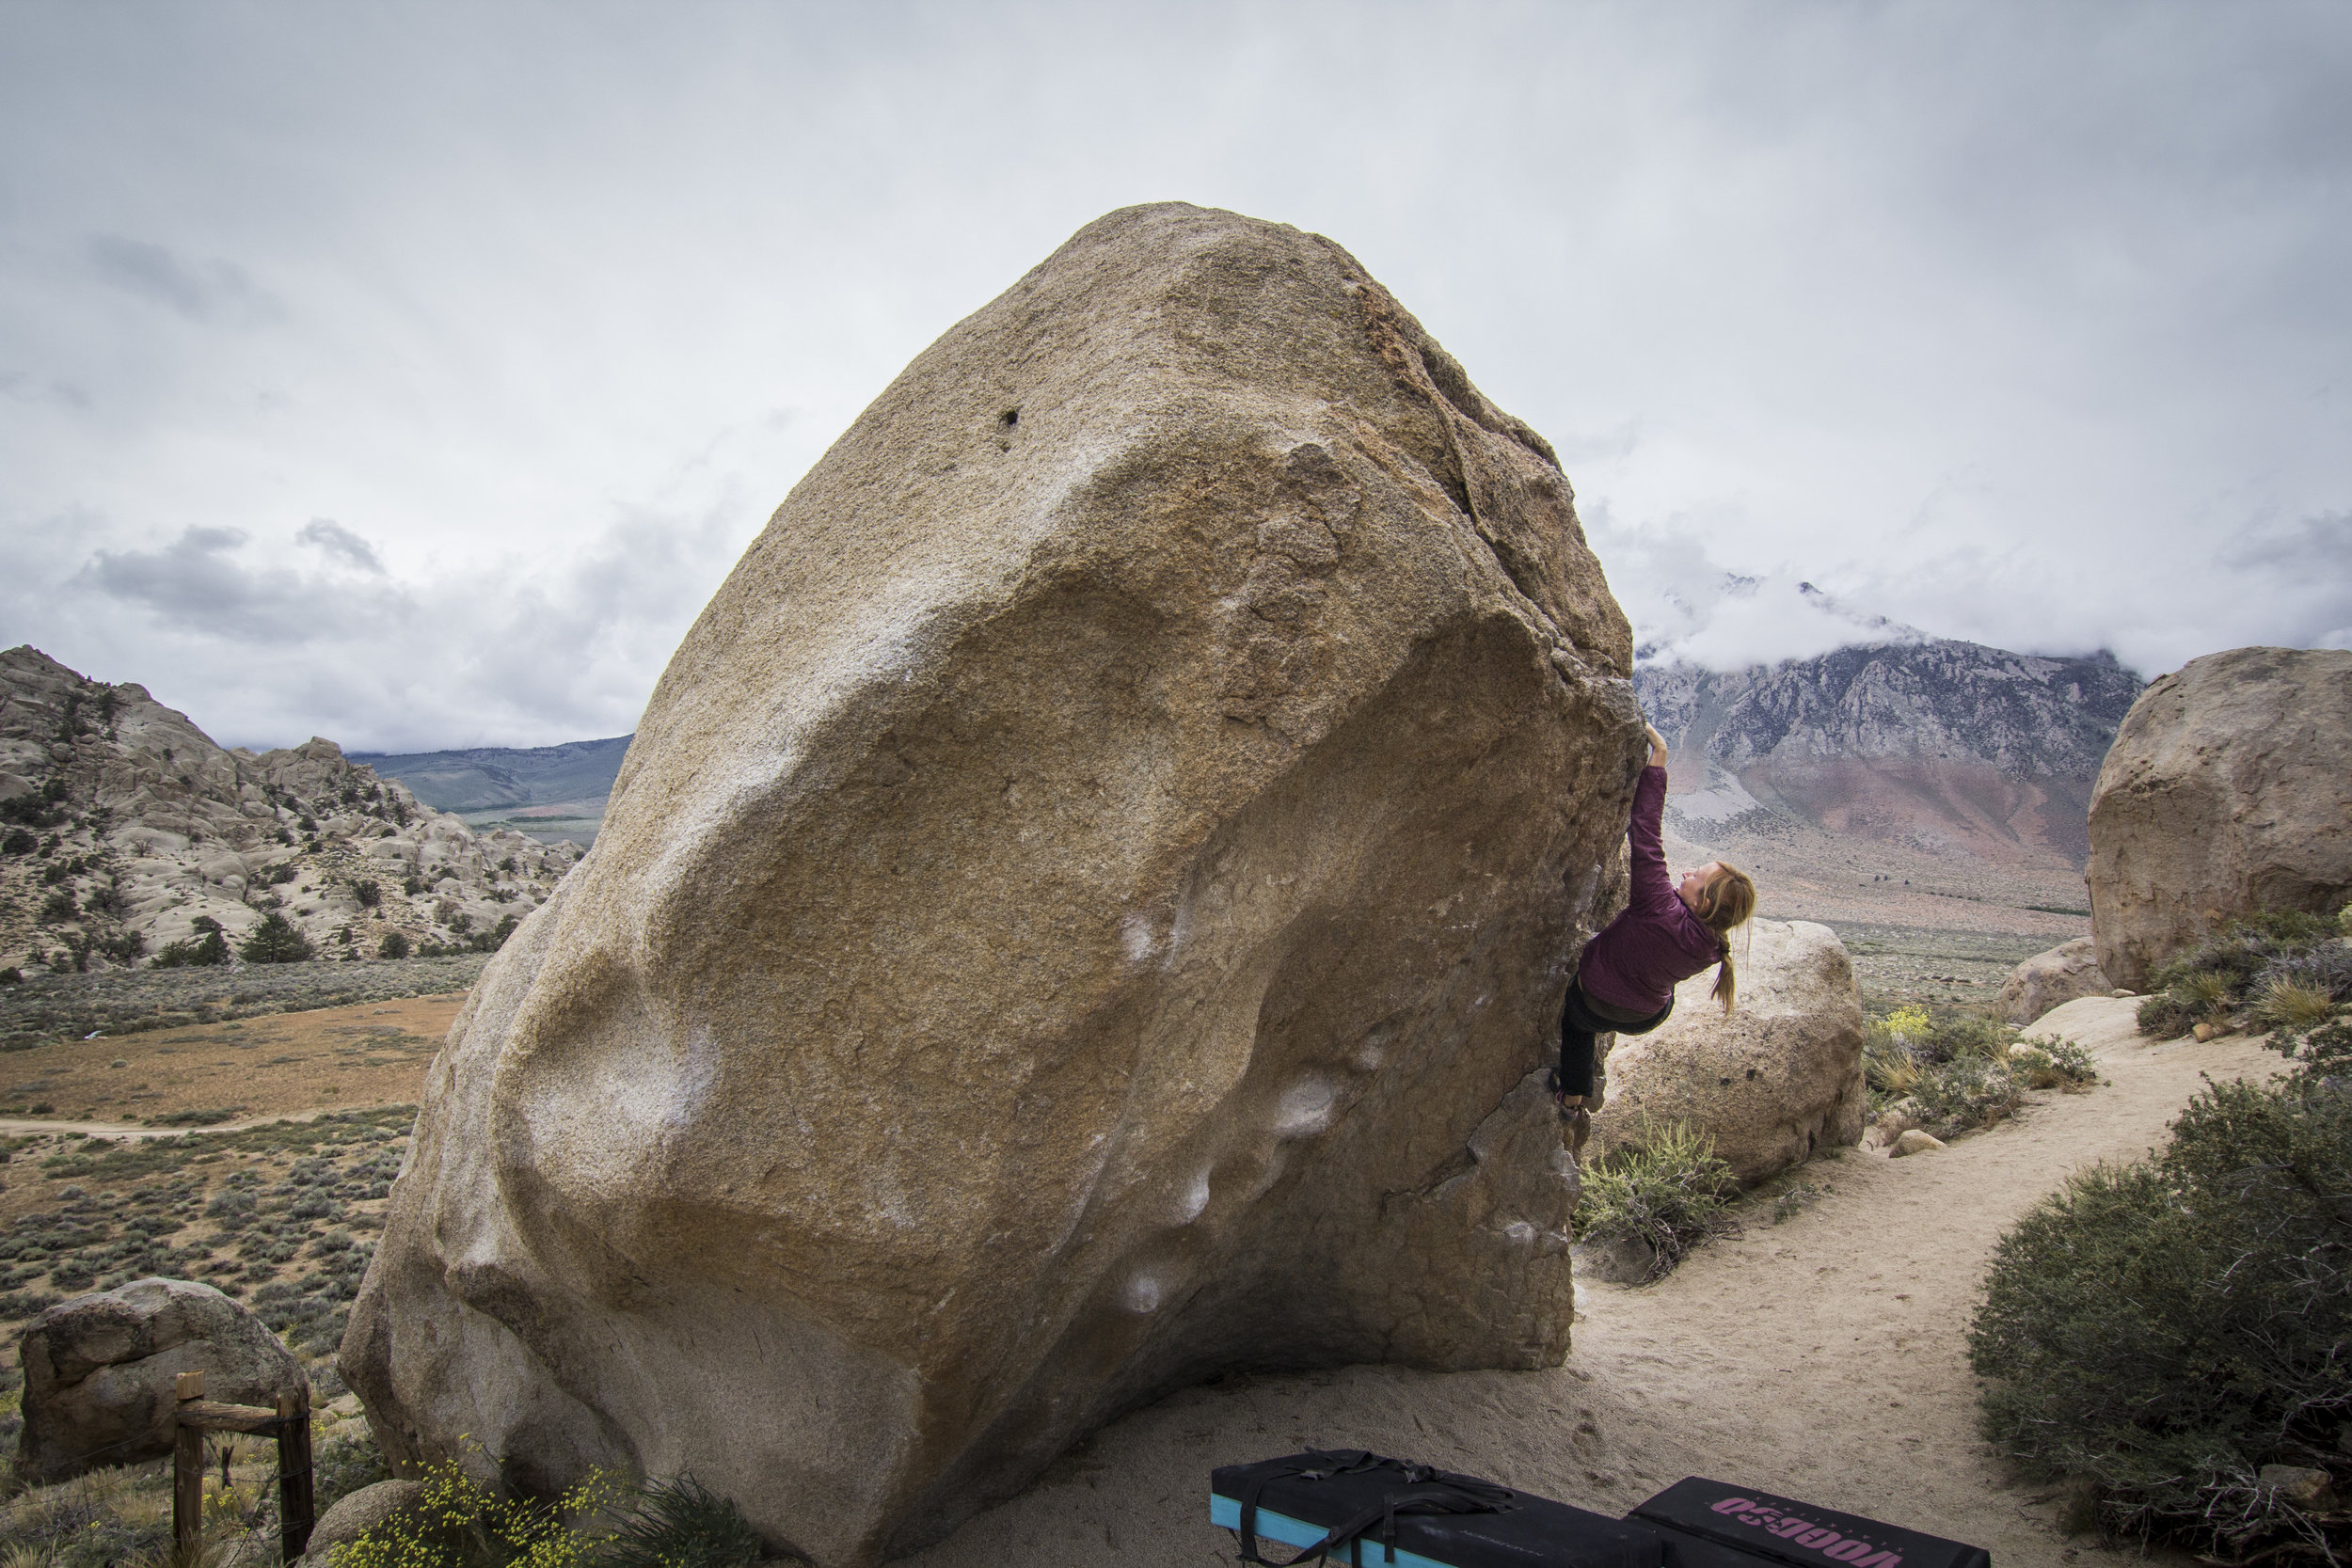 Hero Roof, V0+, Photo by Michael Auffant